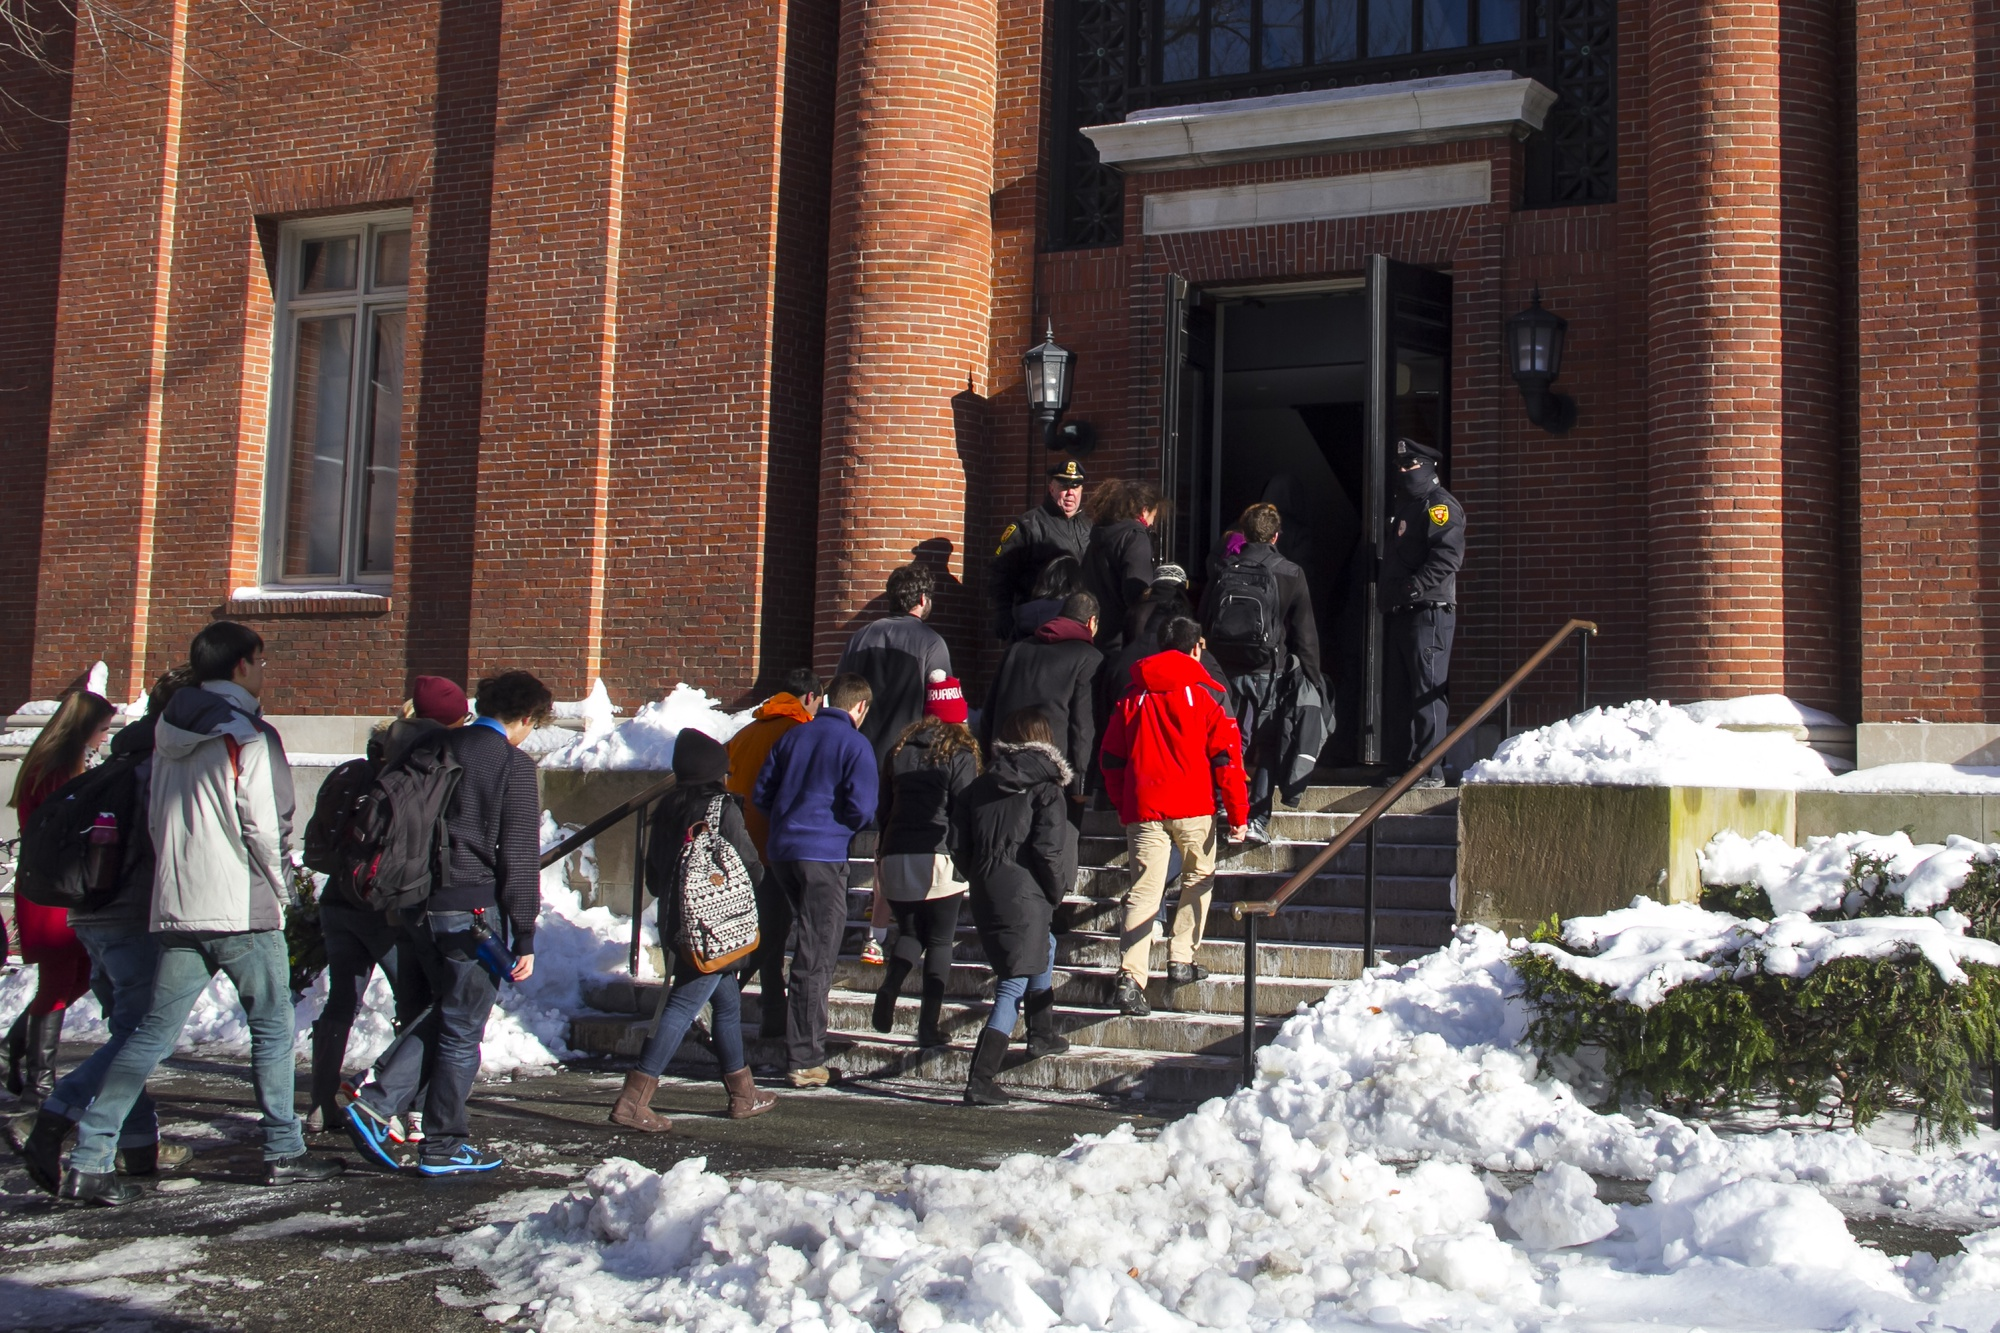 Students enter Emerson Hall to take their final examinations after it had been deemed safe by University officials.